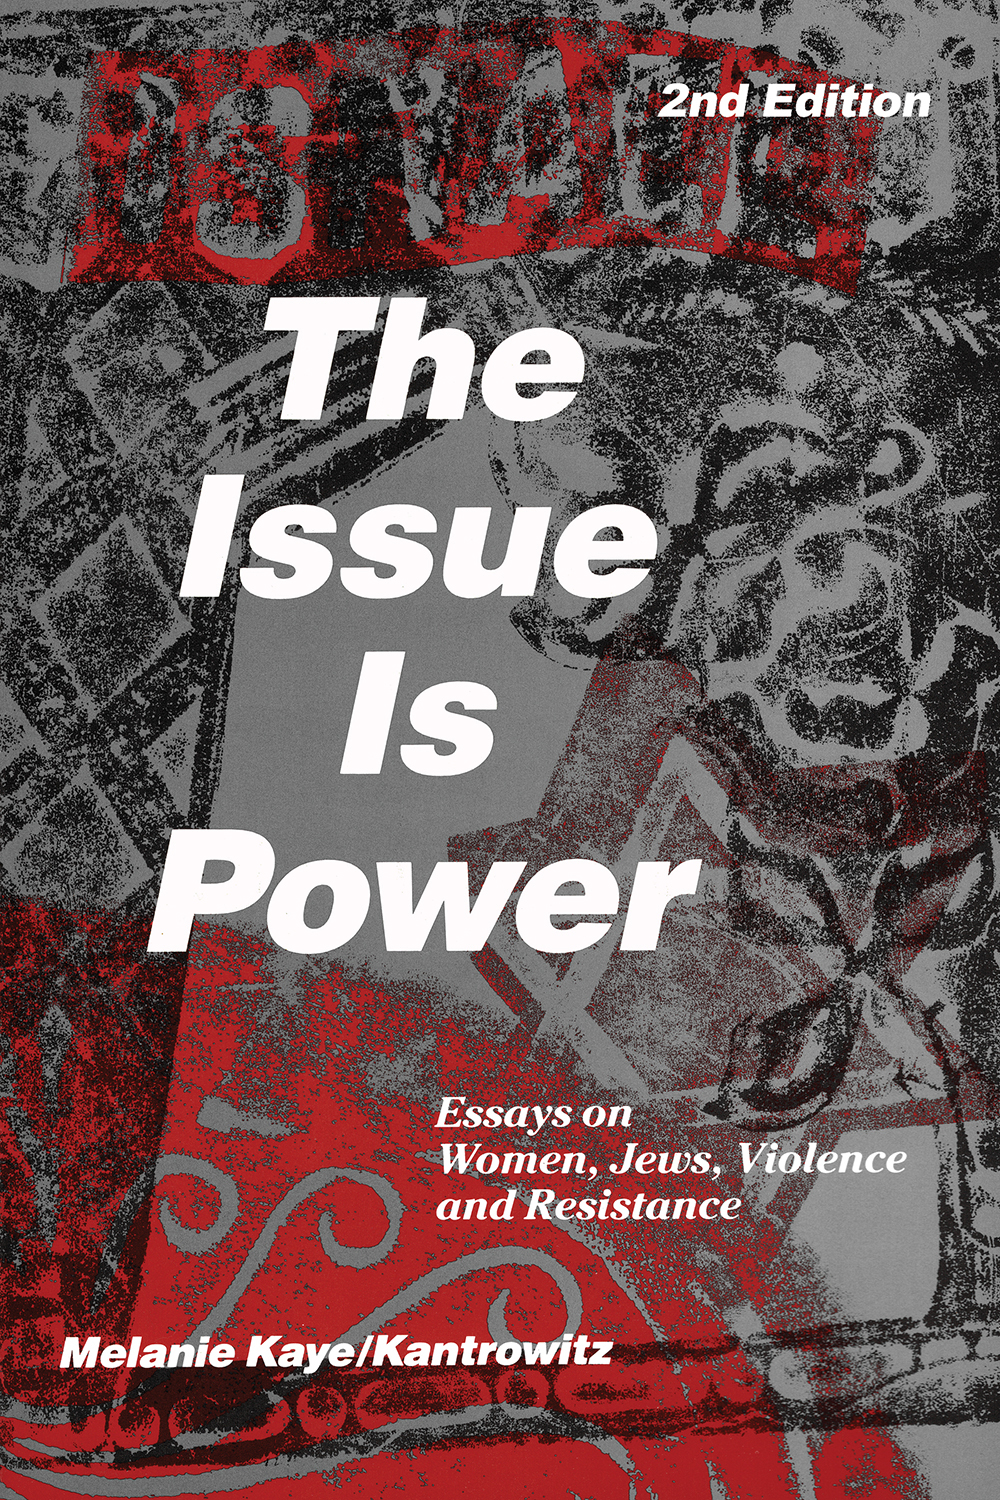 the issue is power | melanie kaye/kantrowitz | aunt lute books